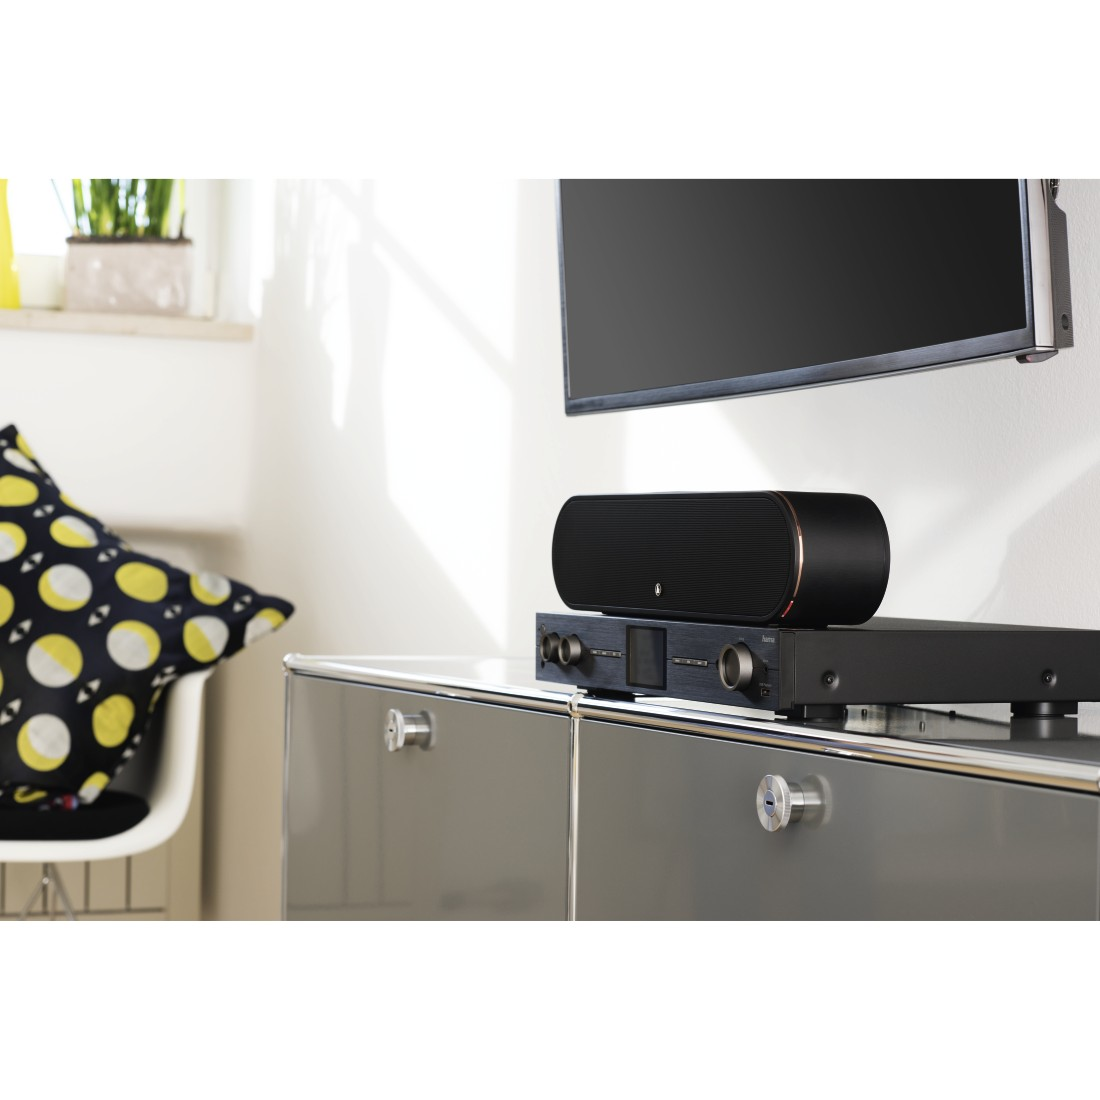 "prx Druckfähiges Pressebild - Hama, Smart-Slim-Soundbar 2.1 ""SIRIUM3800ABT"", Wireless Subwoofer/Alexa/Bluetooth"